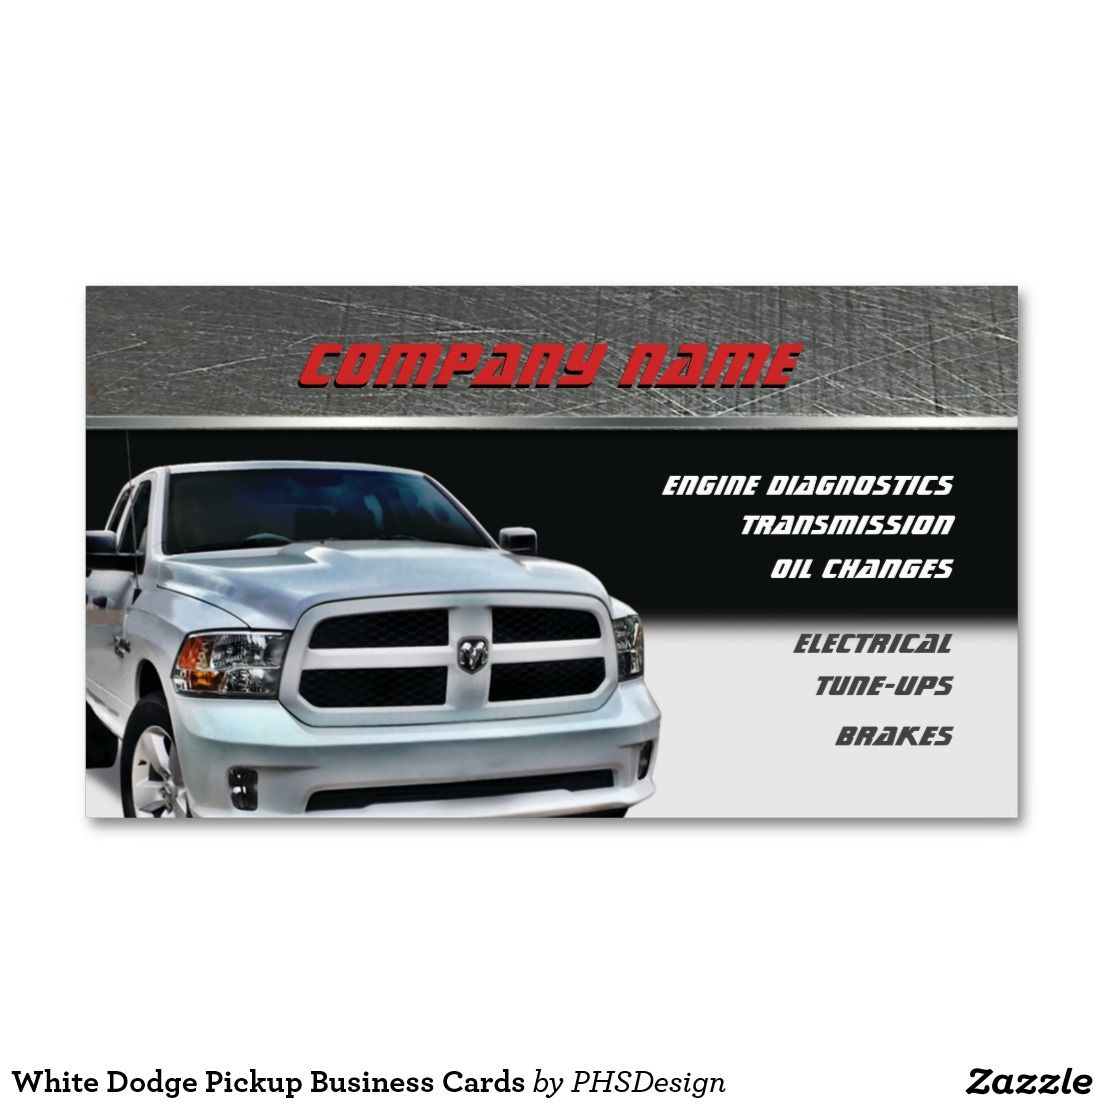 White dodge pickup business cards business card templates white dodge pickup business cards colourmoves